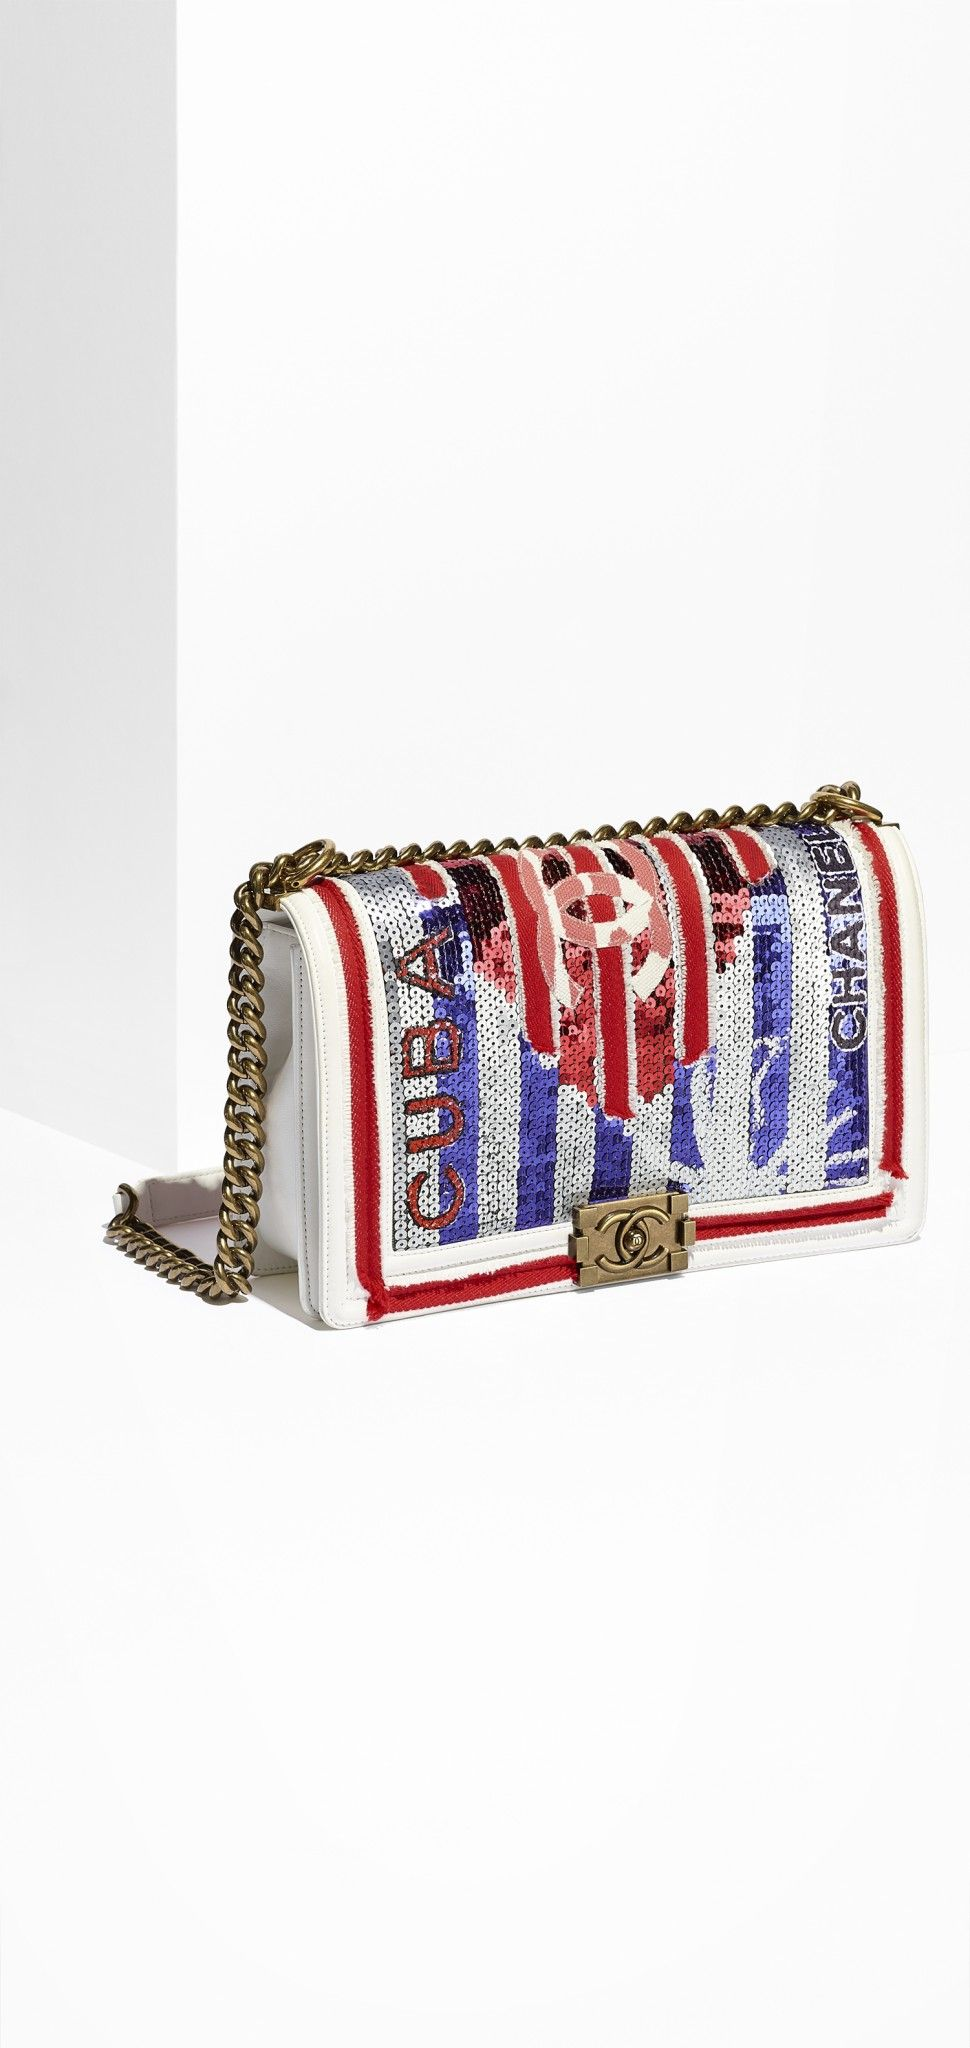 08_white-embroidered-leather-boy-chanel-bag-a92193-y61182-c7365_1_ld